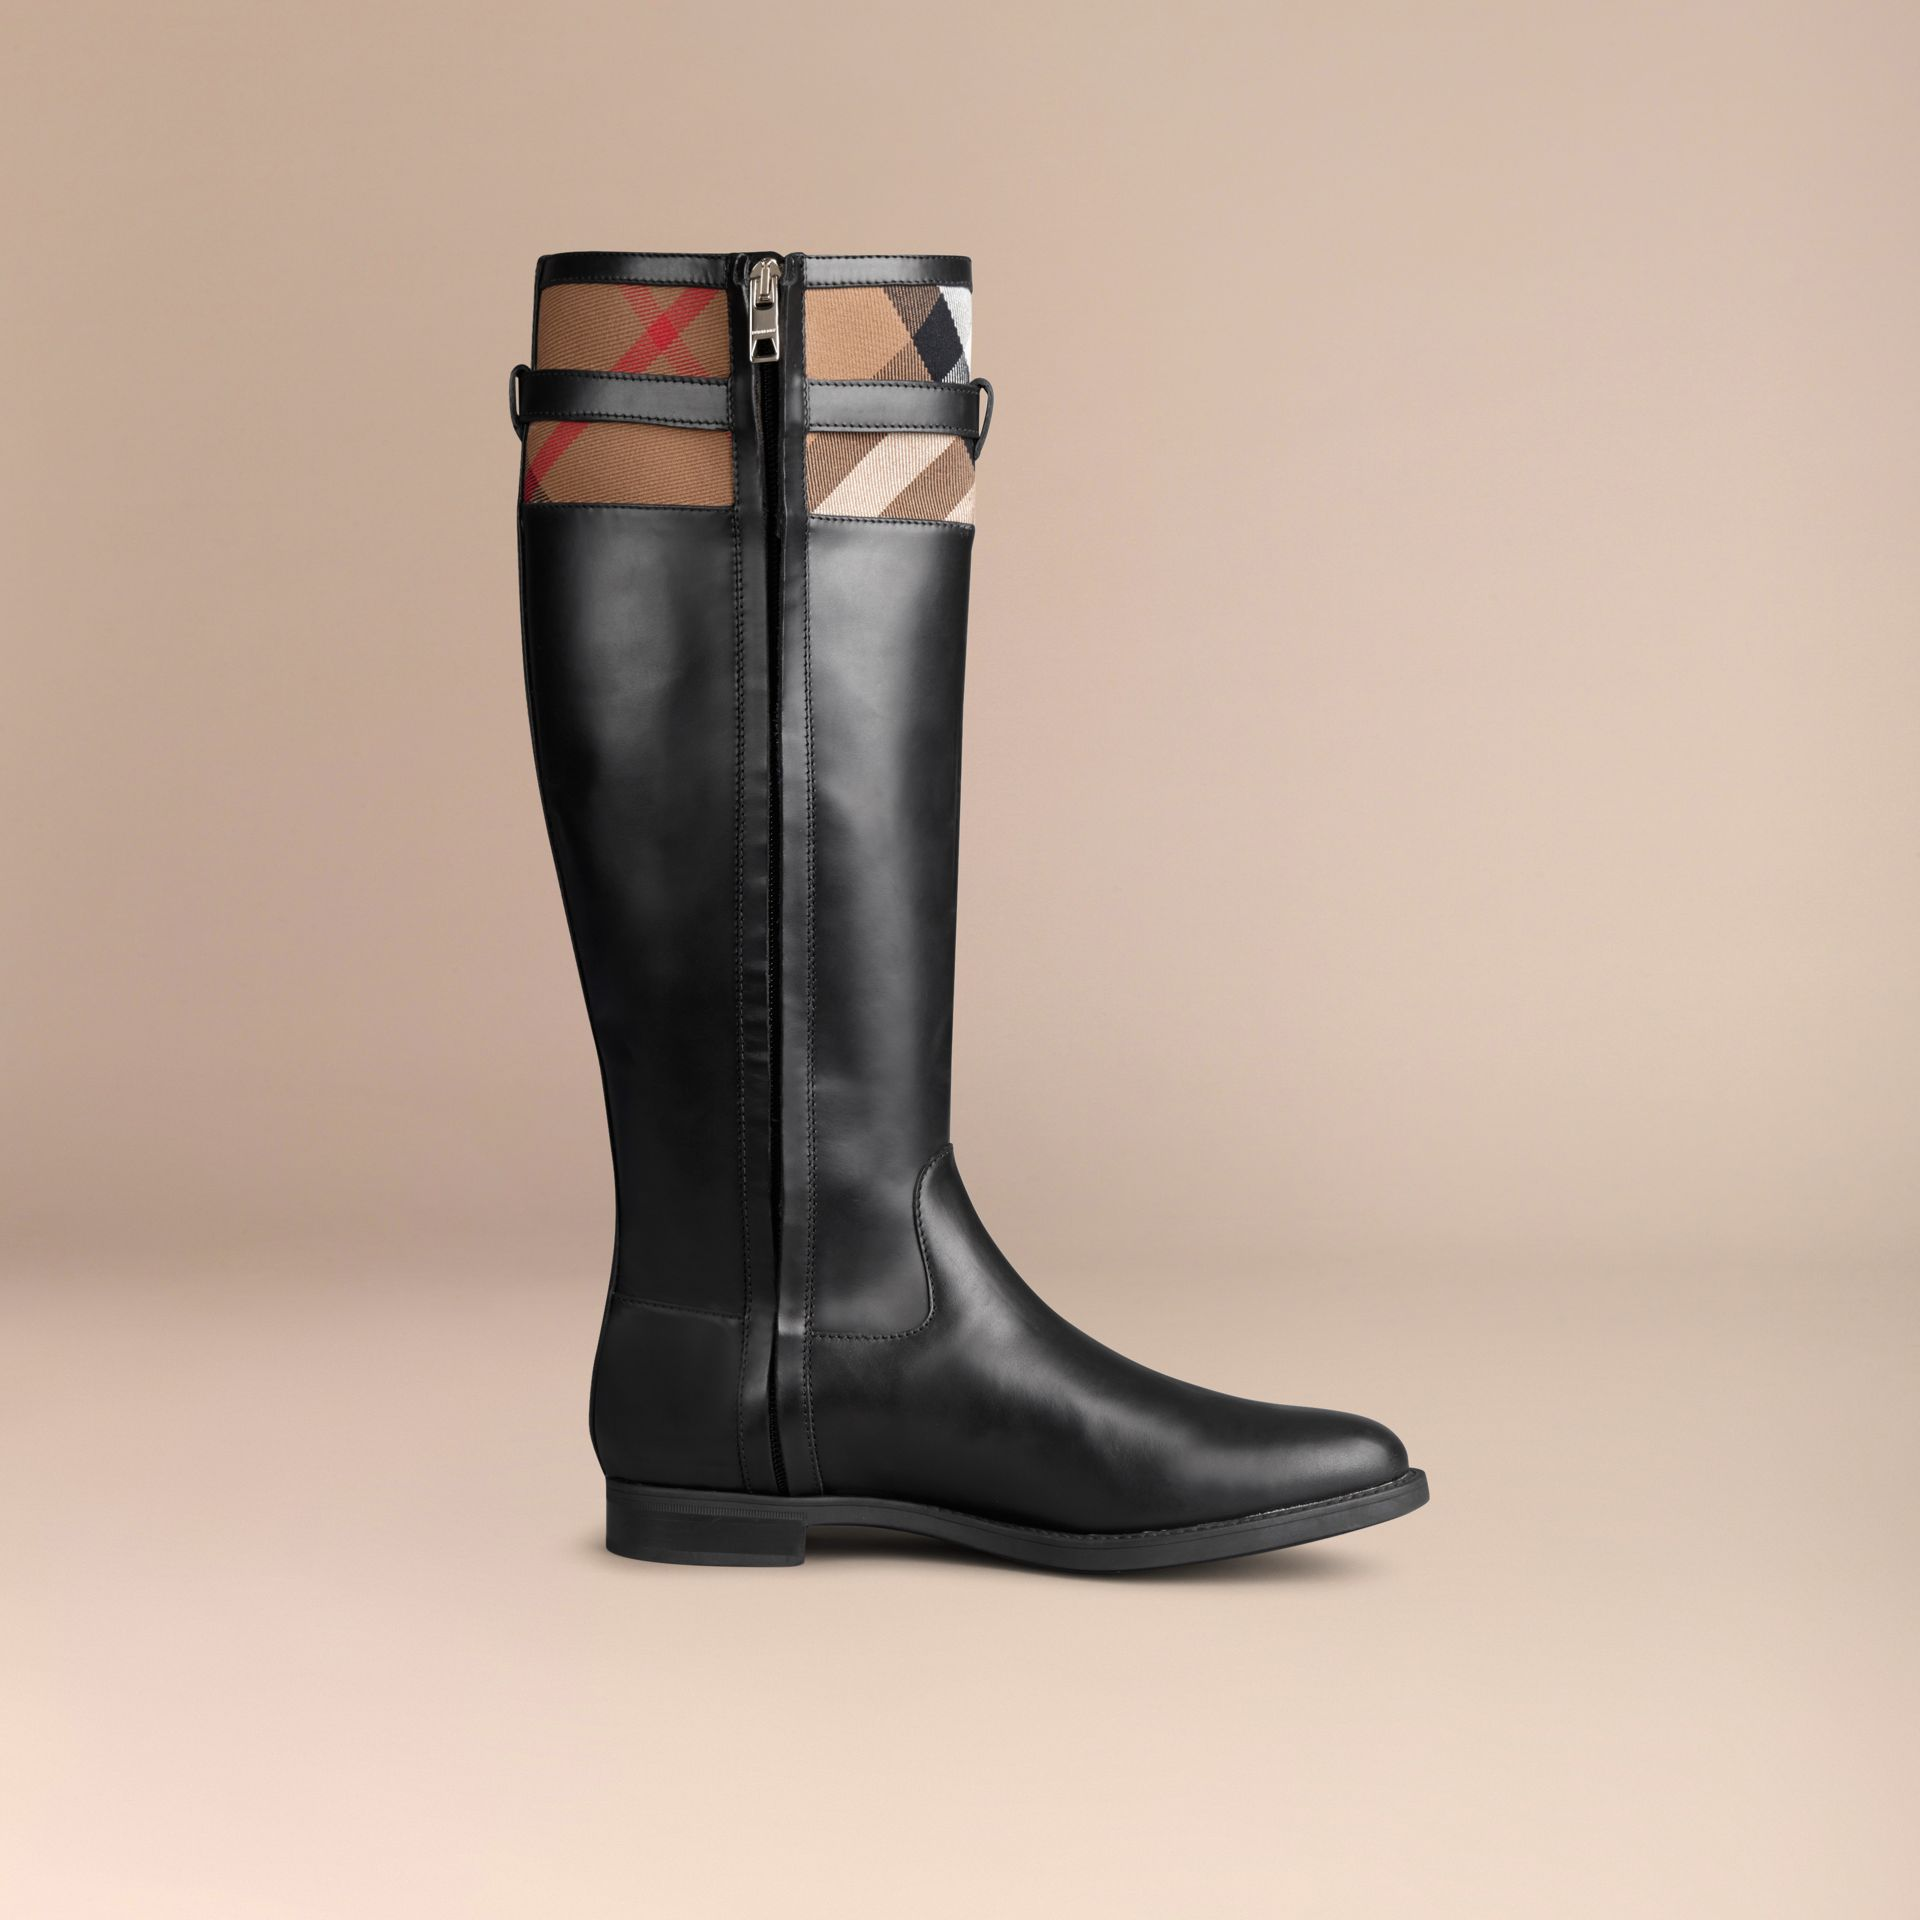 House Check Detail Riding Boots - gallery image 3